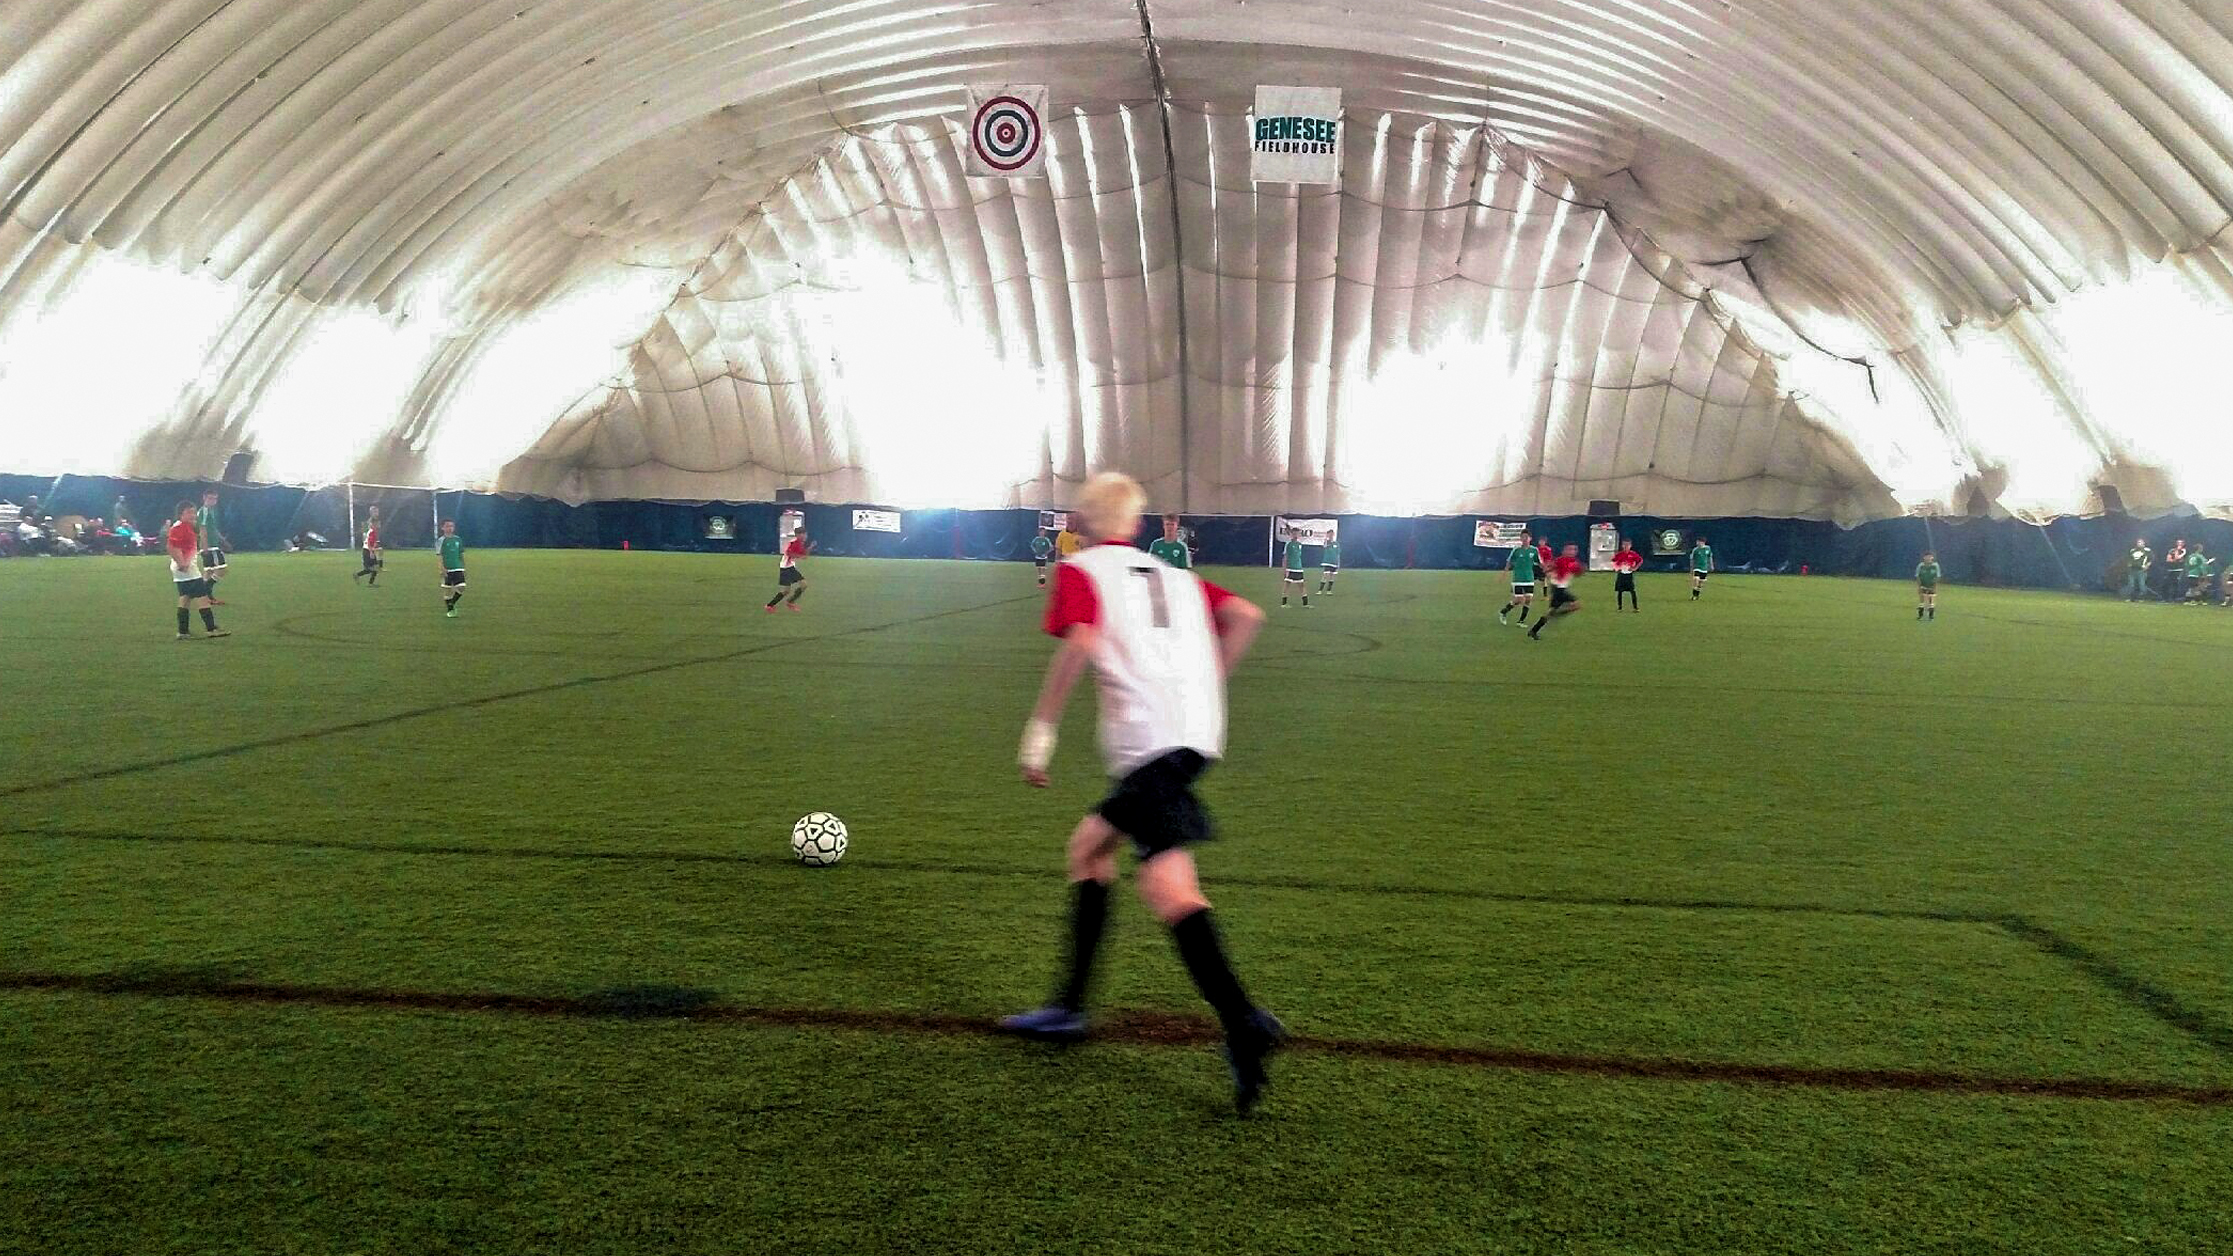 Soccer at the Genesee Fieldhouse in Grand Blanc, MI